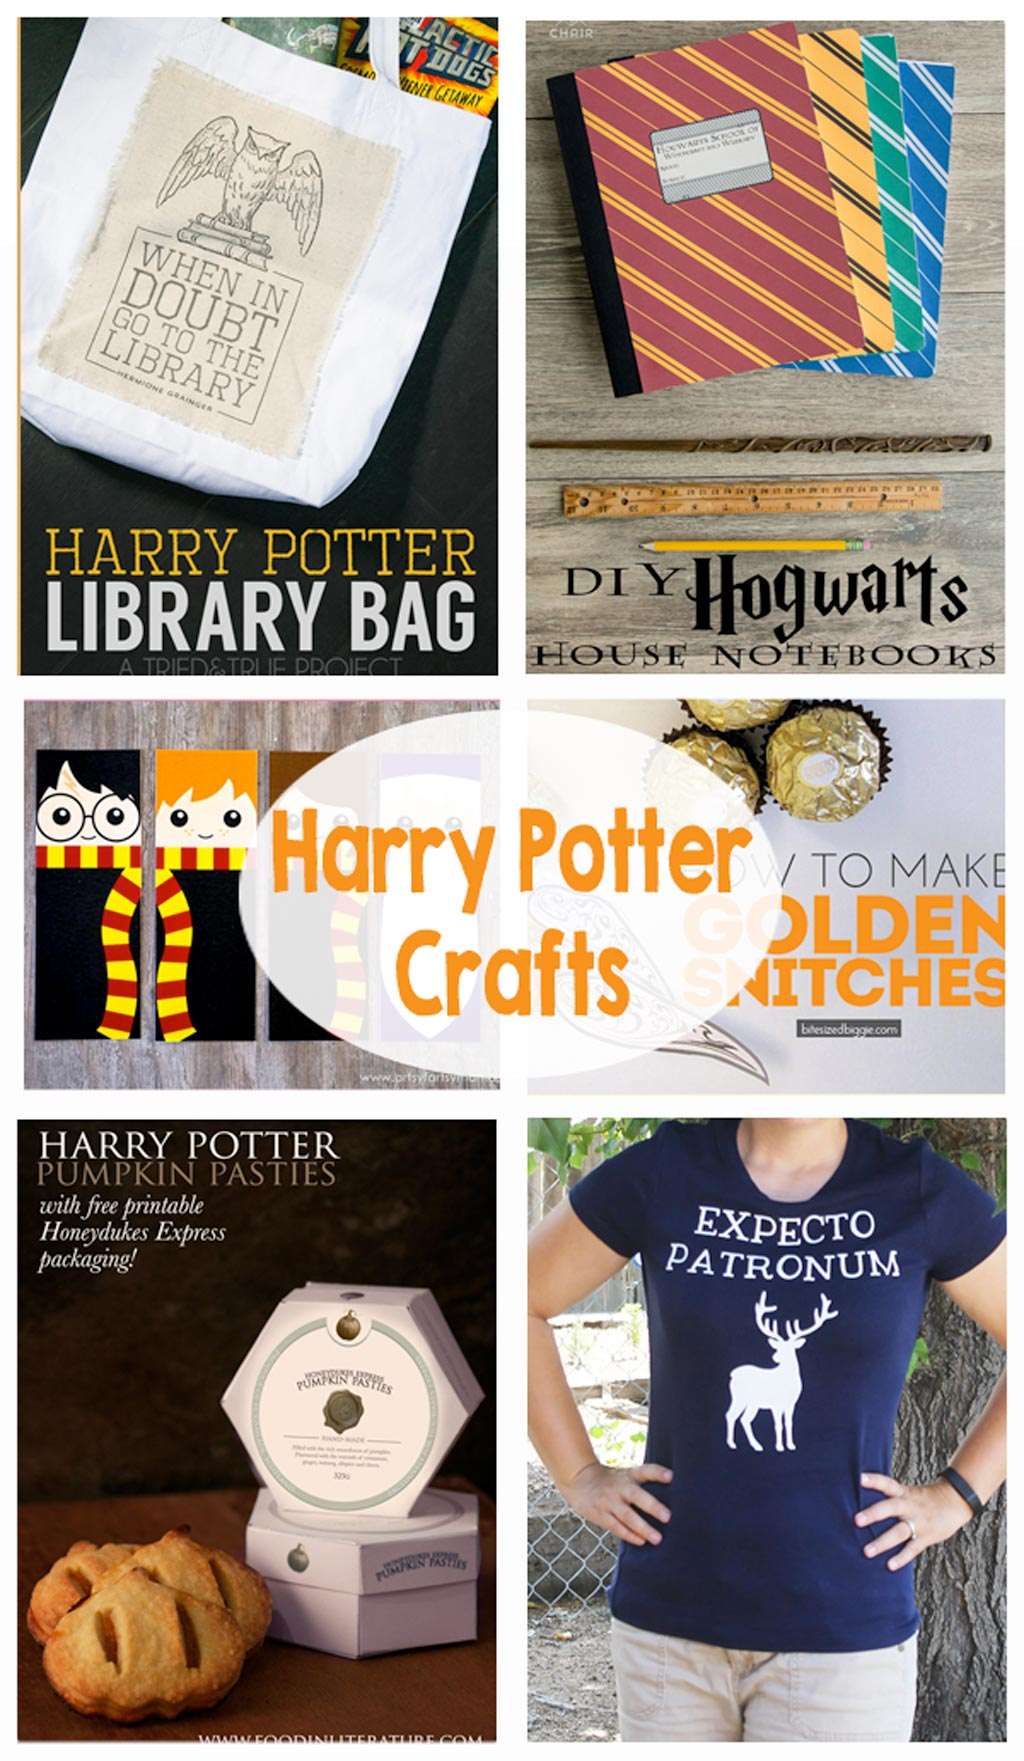 Harry Potter Crafts